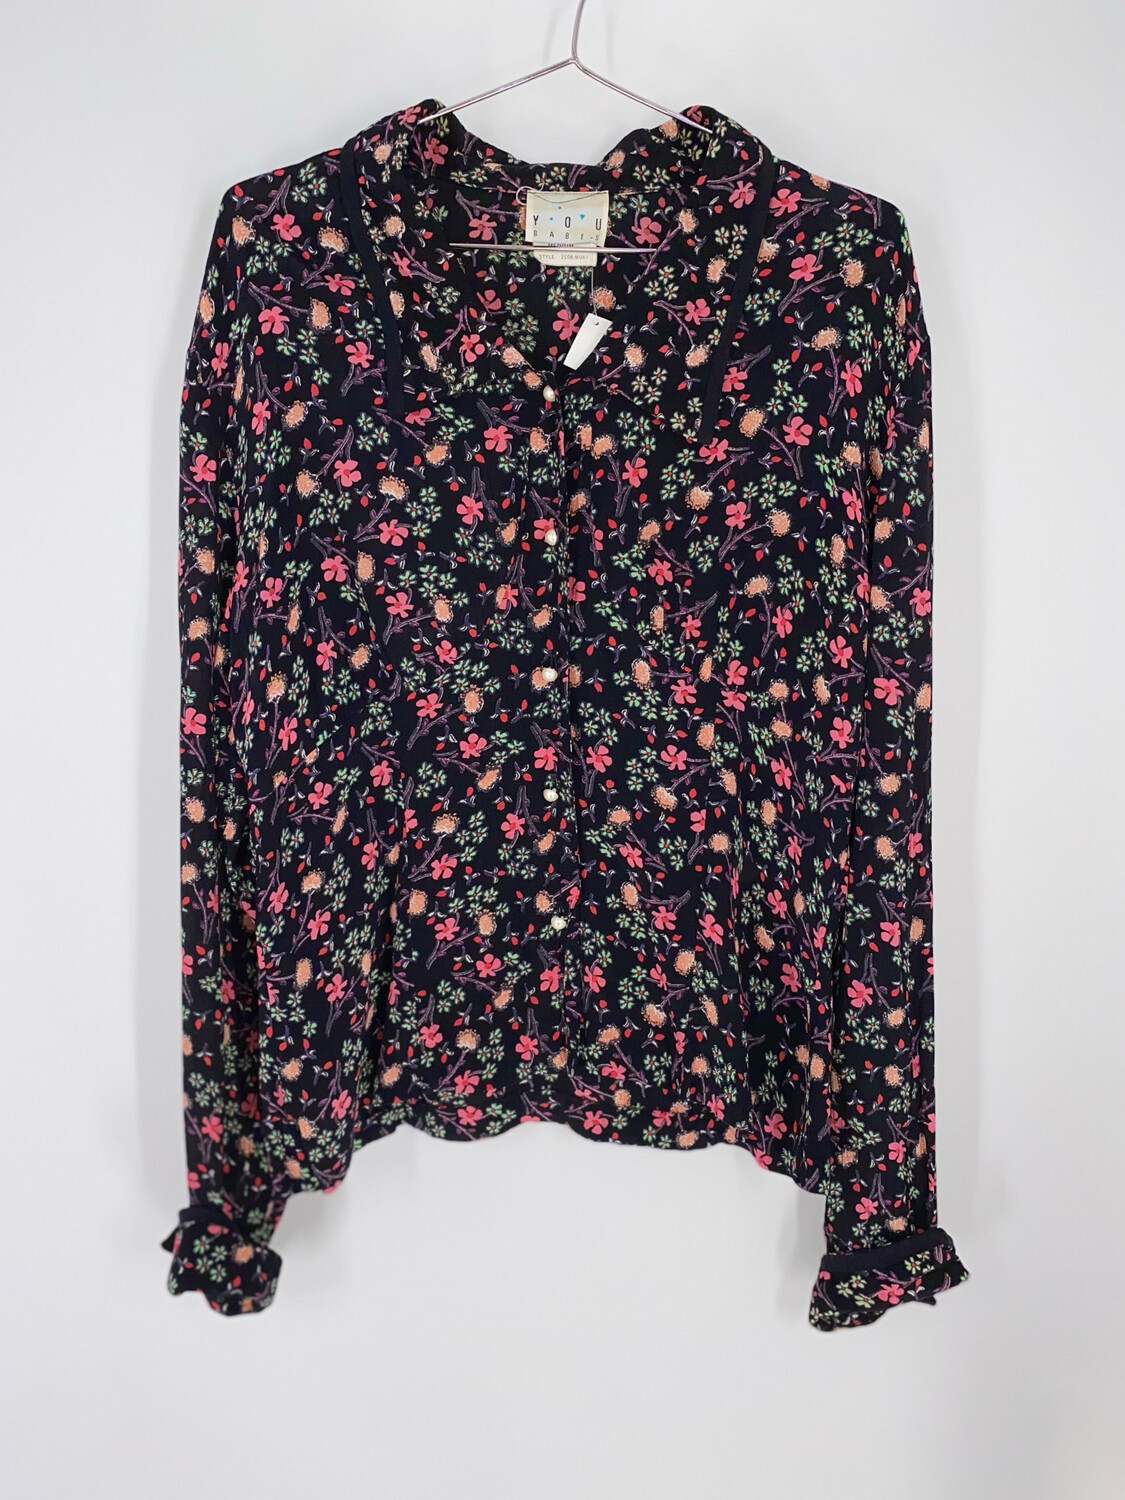 You Babes Floral Button Up Top Size M